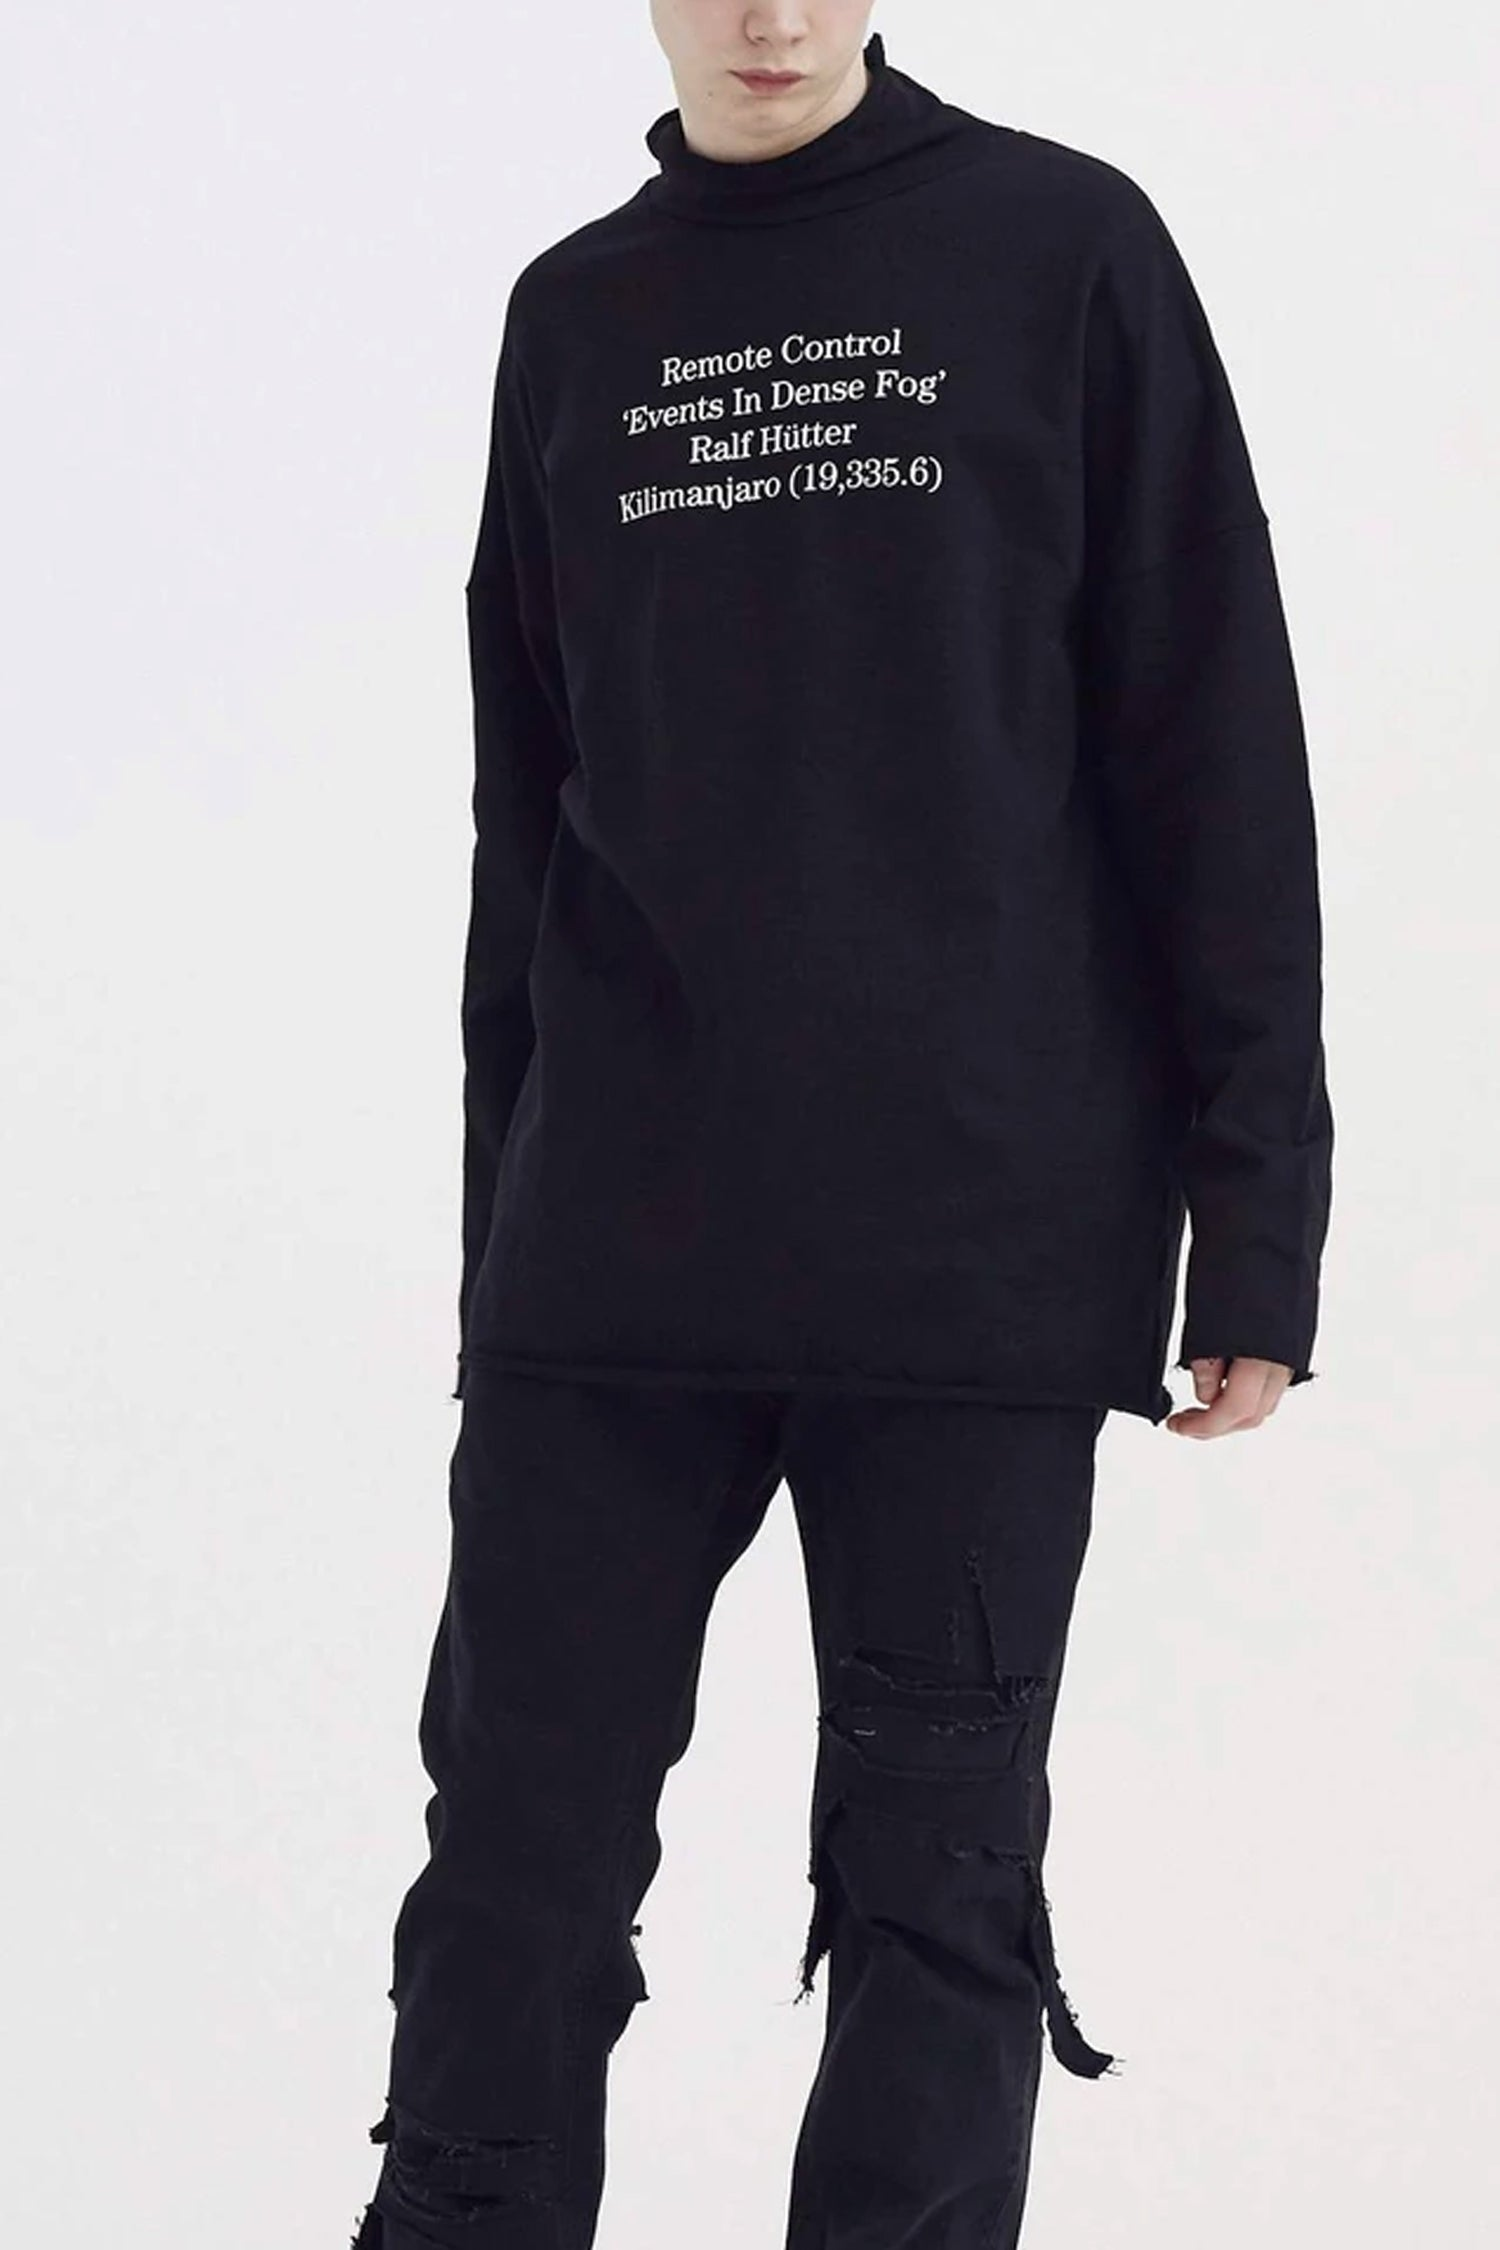 SWEATSHIRT WITH WORDING